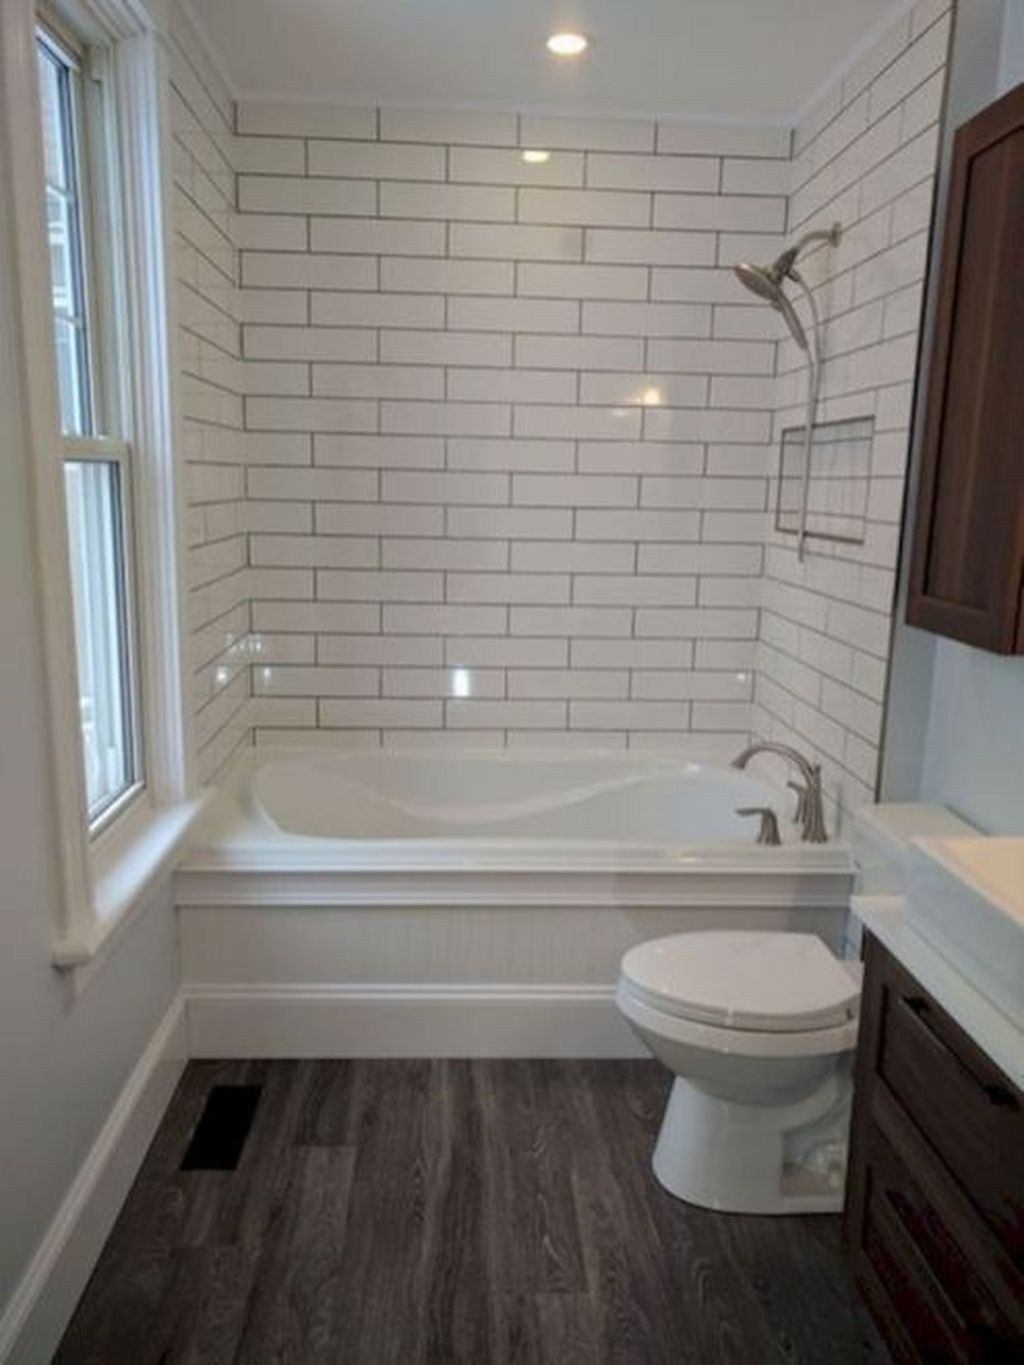 39 Magnificient Small Bathroom Tub Shower Remodeling Ideas